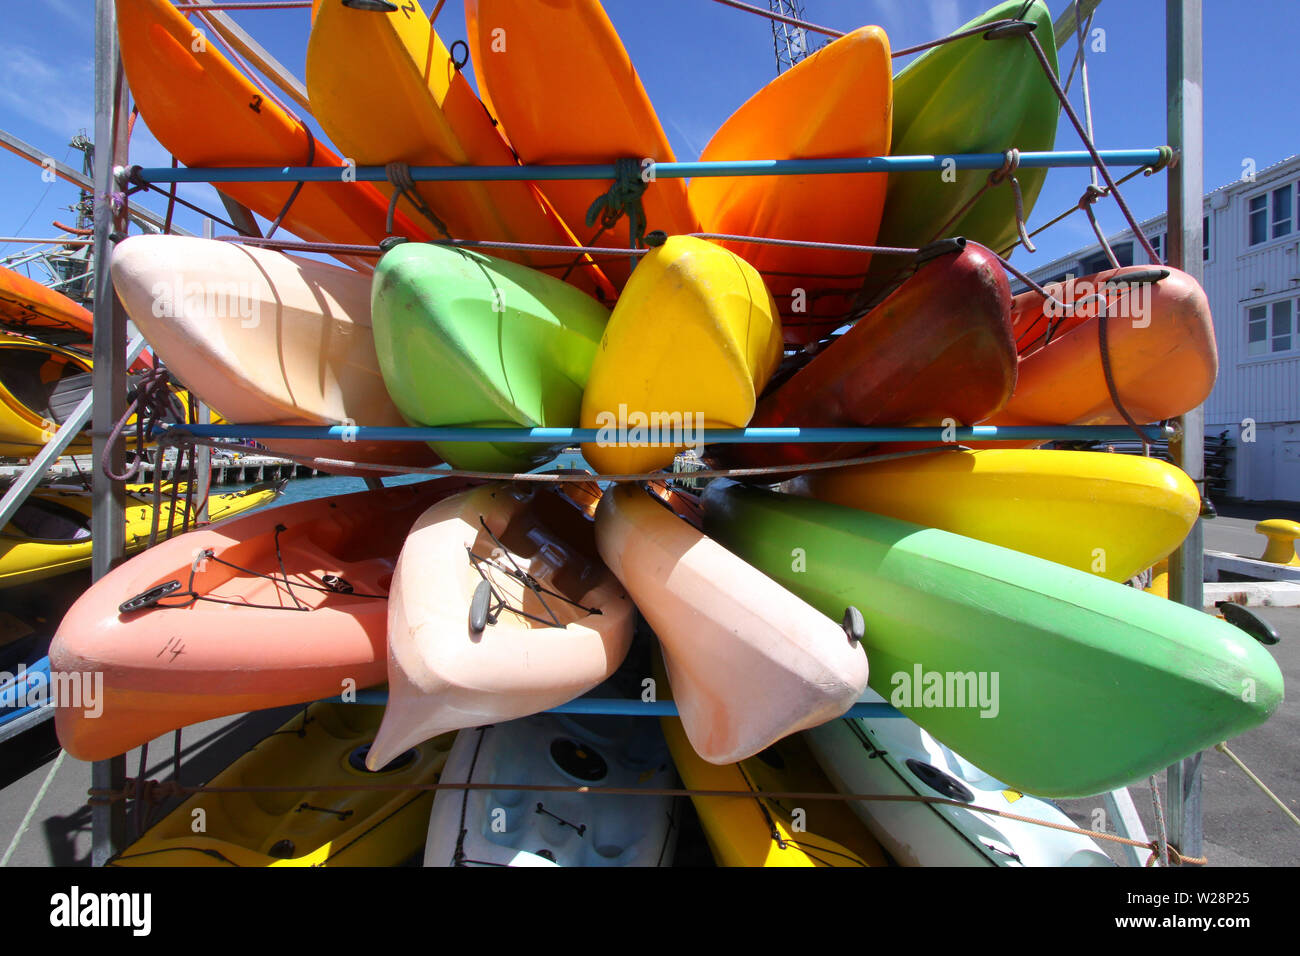 Stacked plastic canoes in the harbor of Wellington - Stock Image